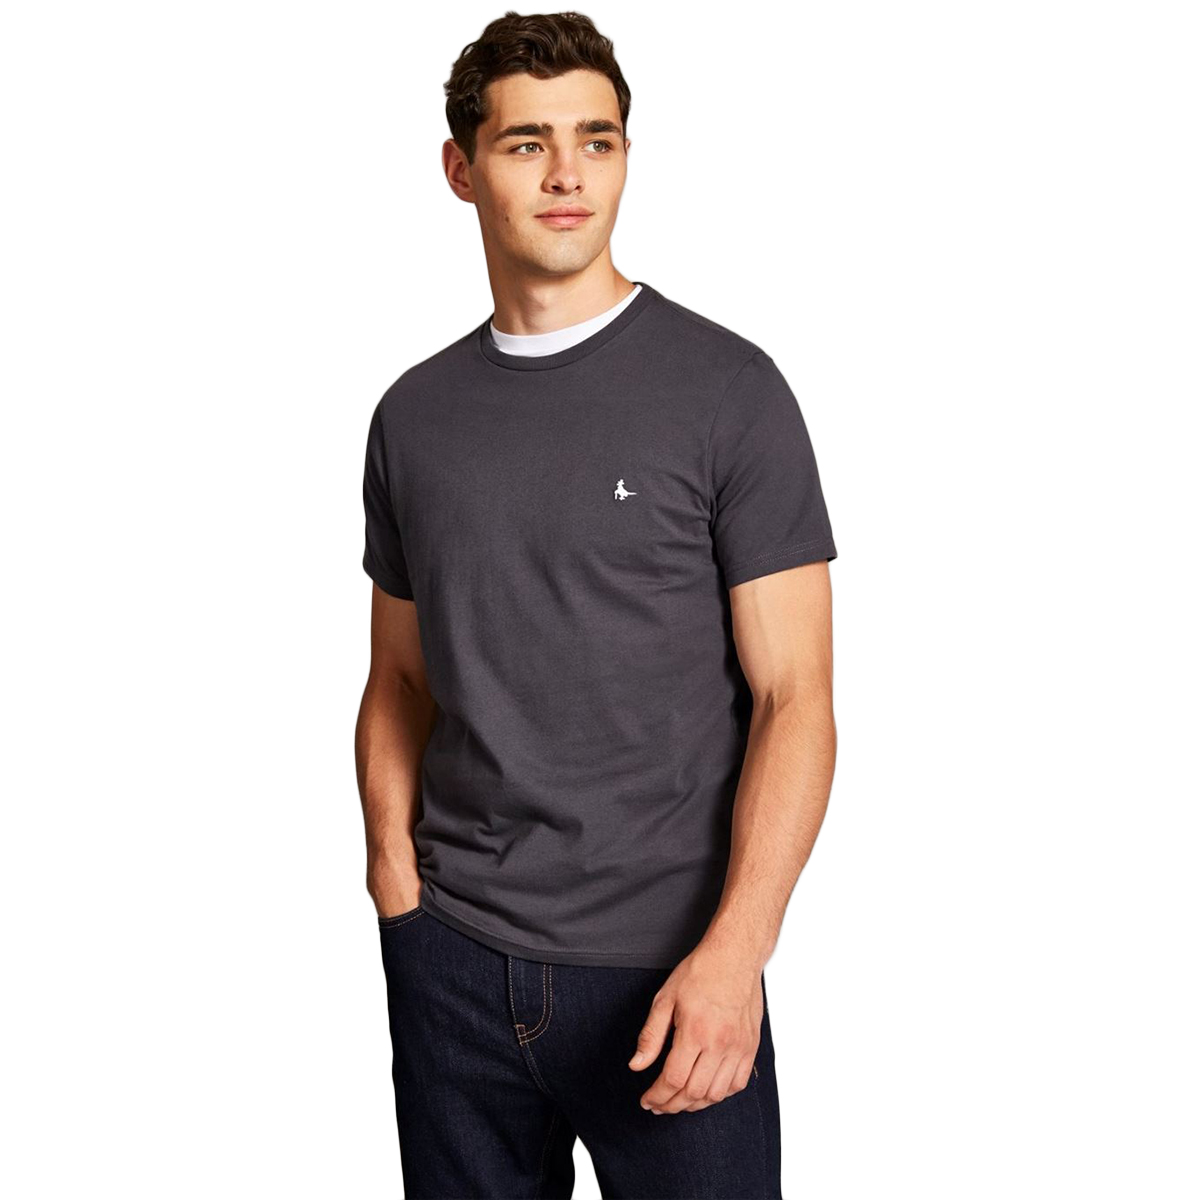 Jack Wills Men's Sandleford Short-Sleeve Tee - Black, M